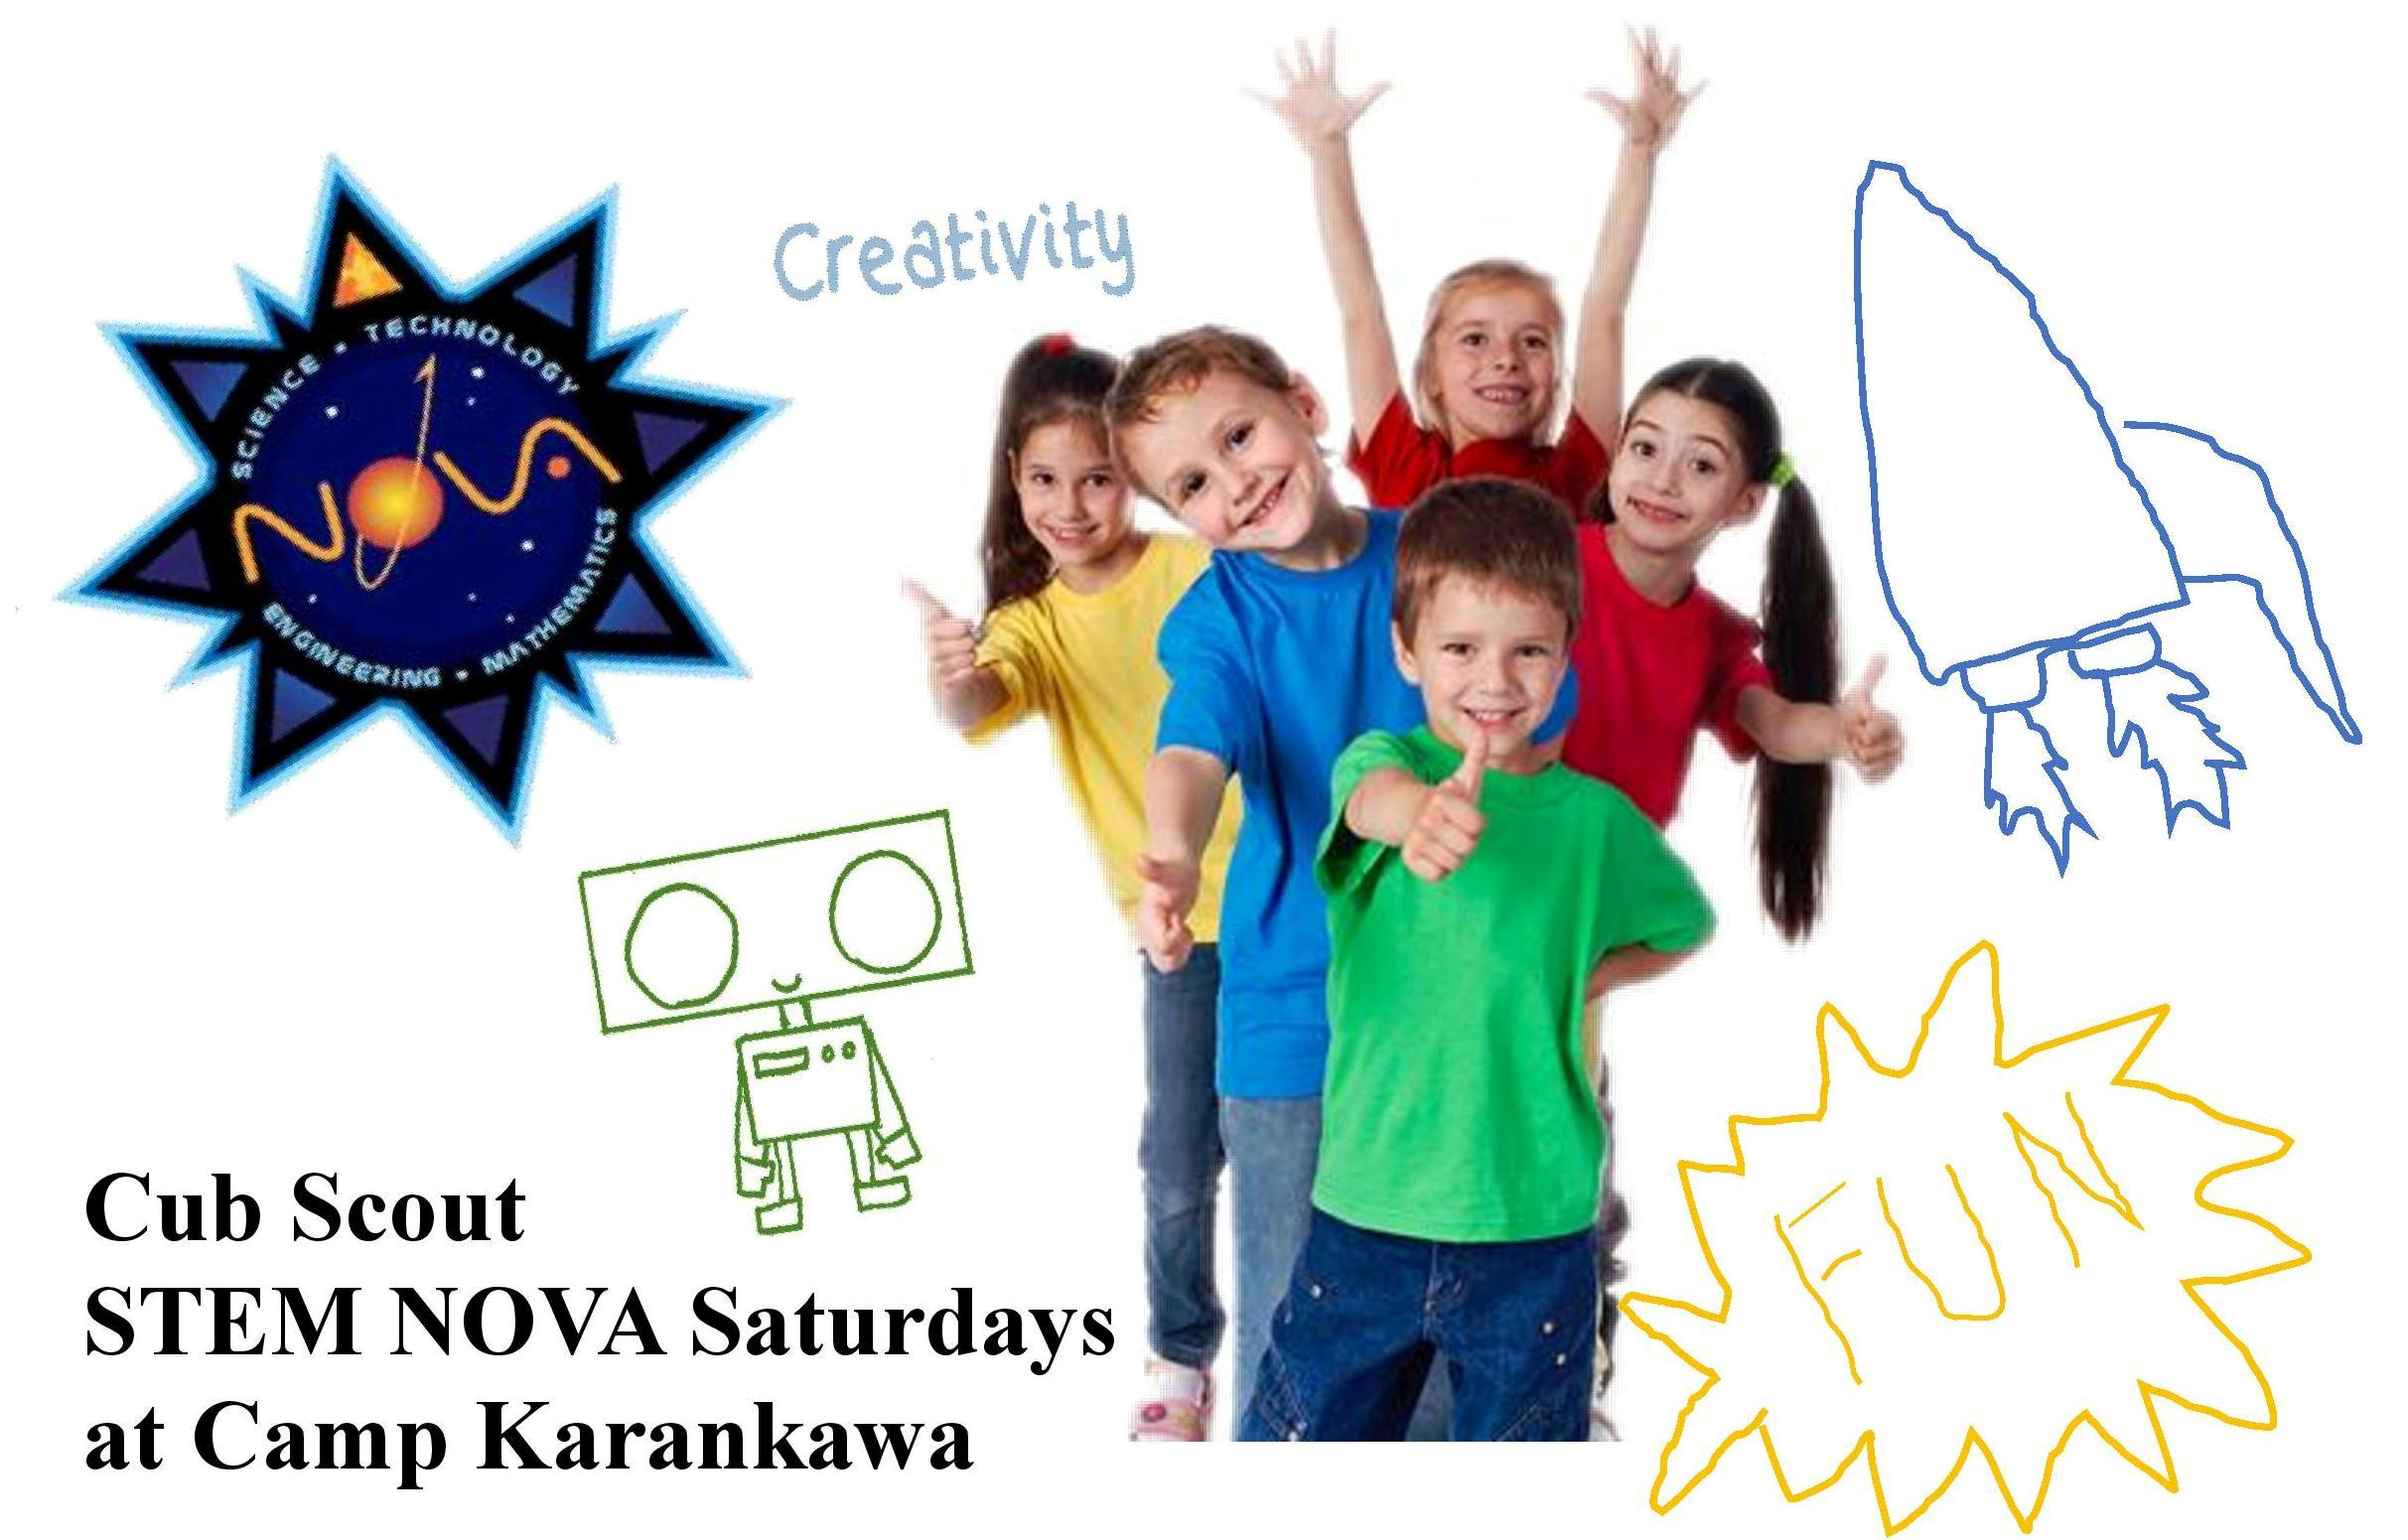 STEM NOVA Saturdays Camp Karankawa Bay Area Council